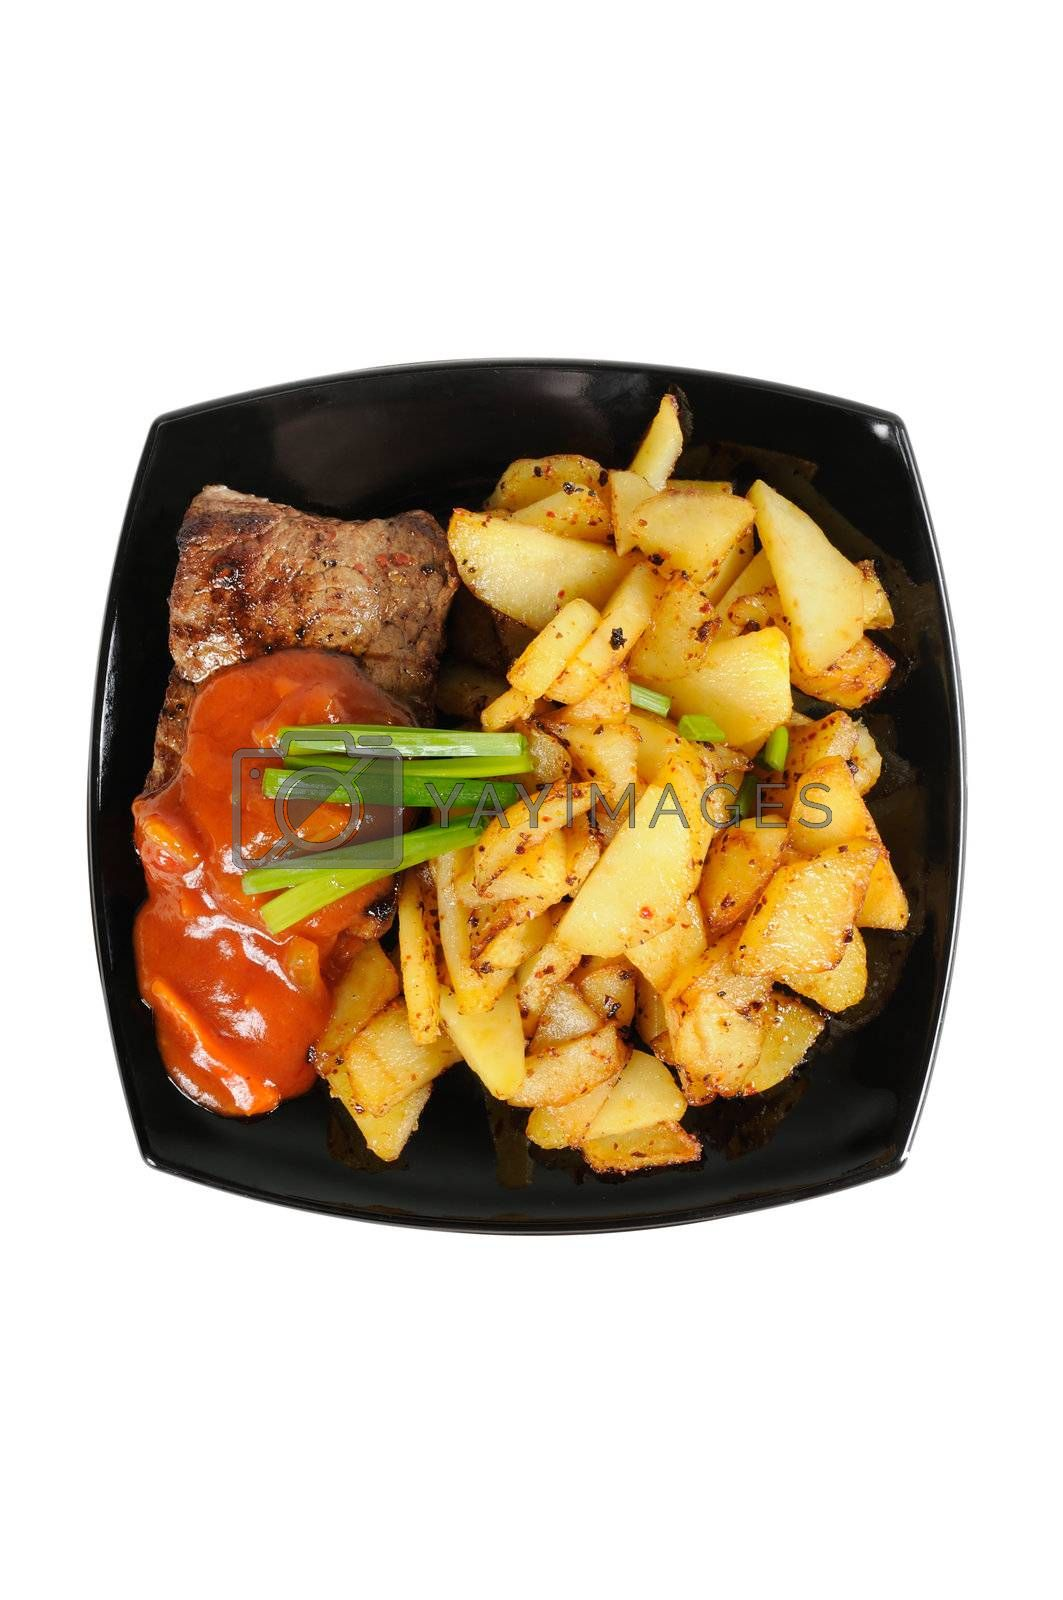 Grilled meat and  fried  potatoes  on a plate. Isolated on white.